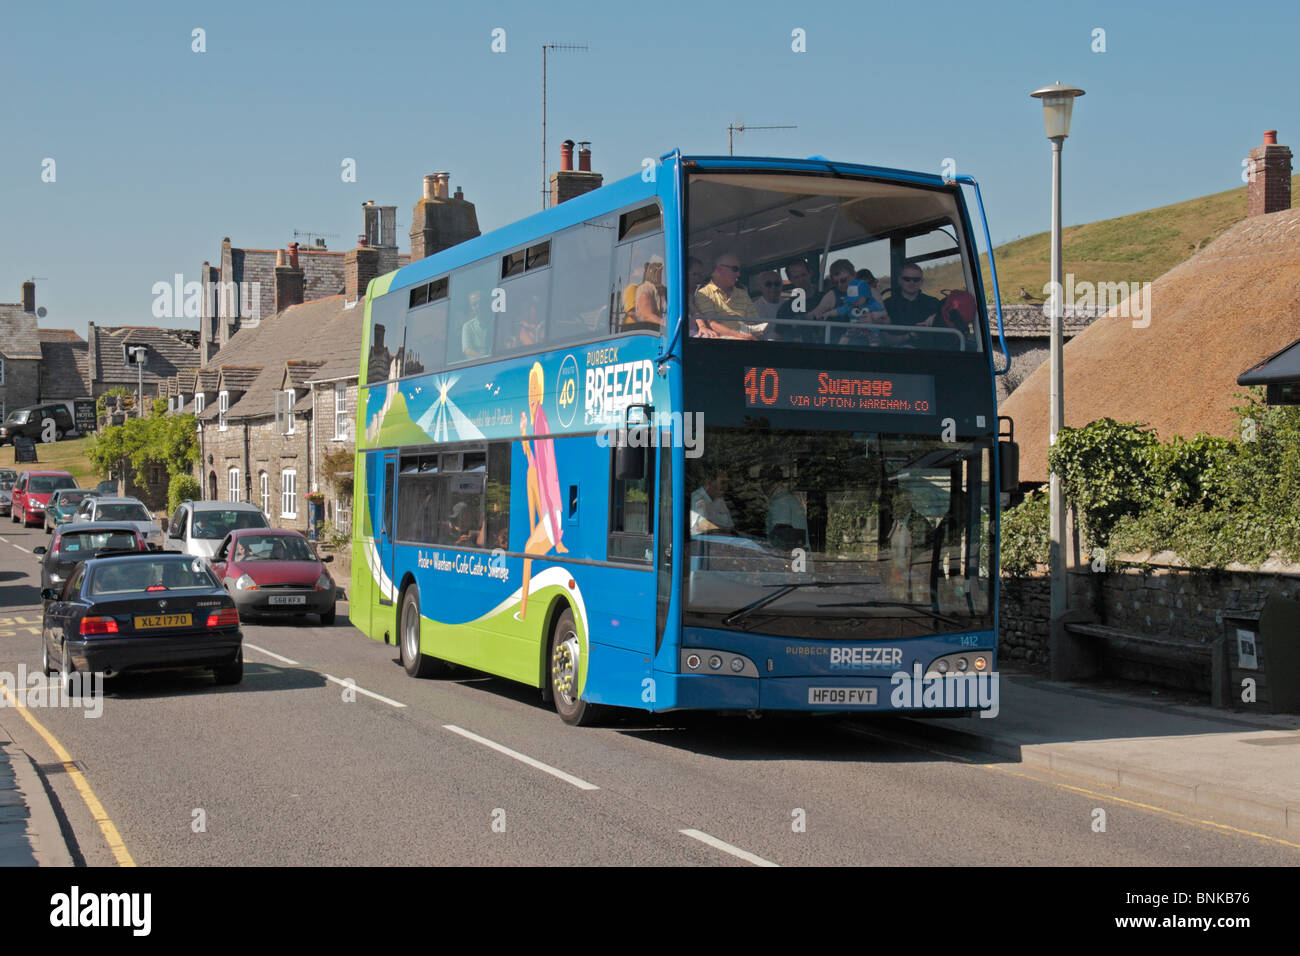 A local Purbeck Breezer public bus, Route 40, on its way to Swanage, blocking traffic in Corfe Castle, Dorset, UK. - Stock Image